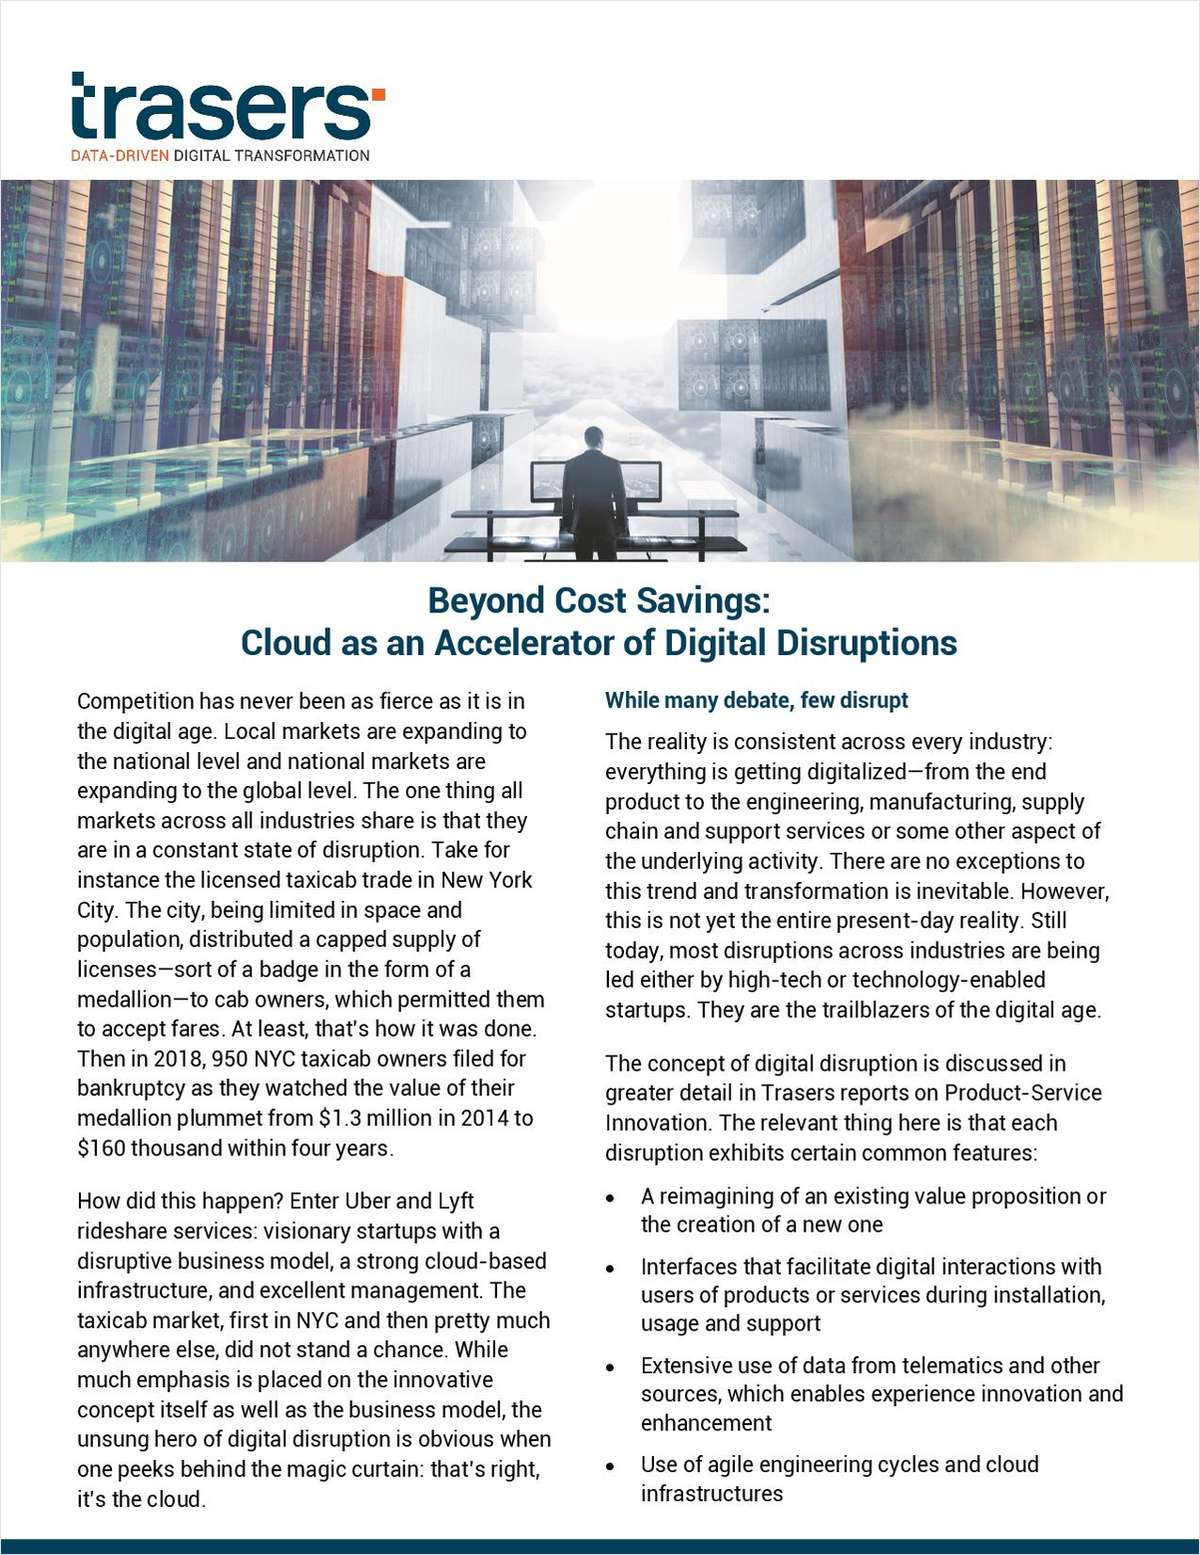 Beyond Cost Savings: Cloud as an Accelerator of Digital Disruptions